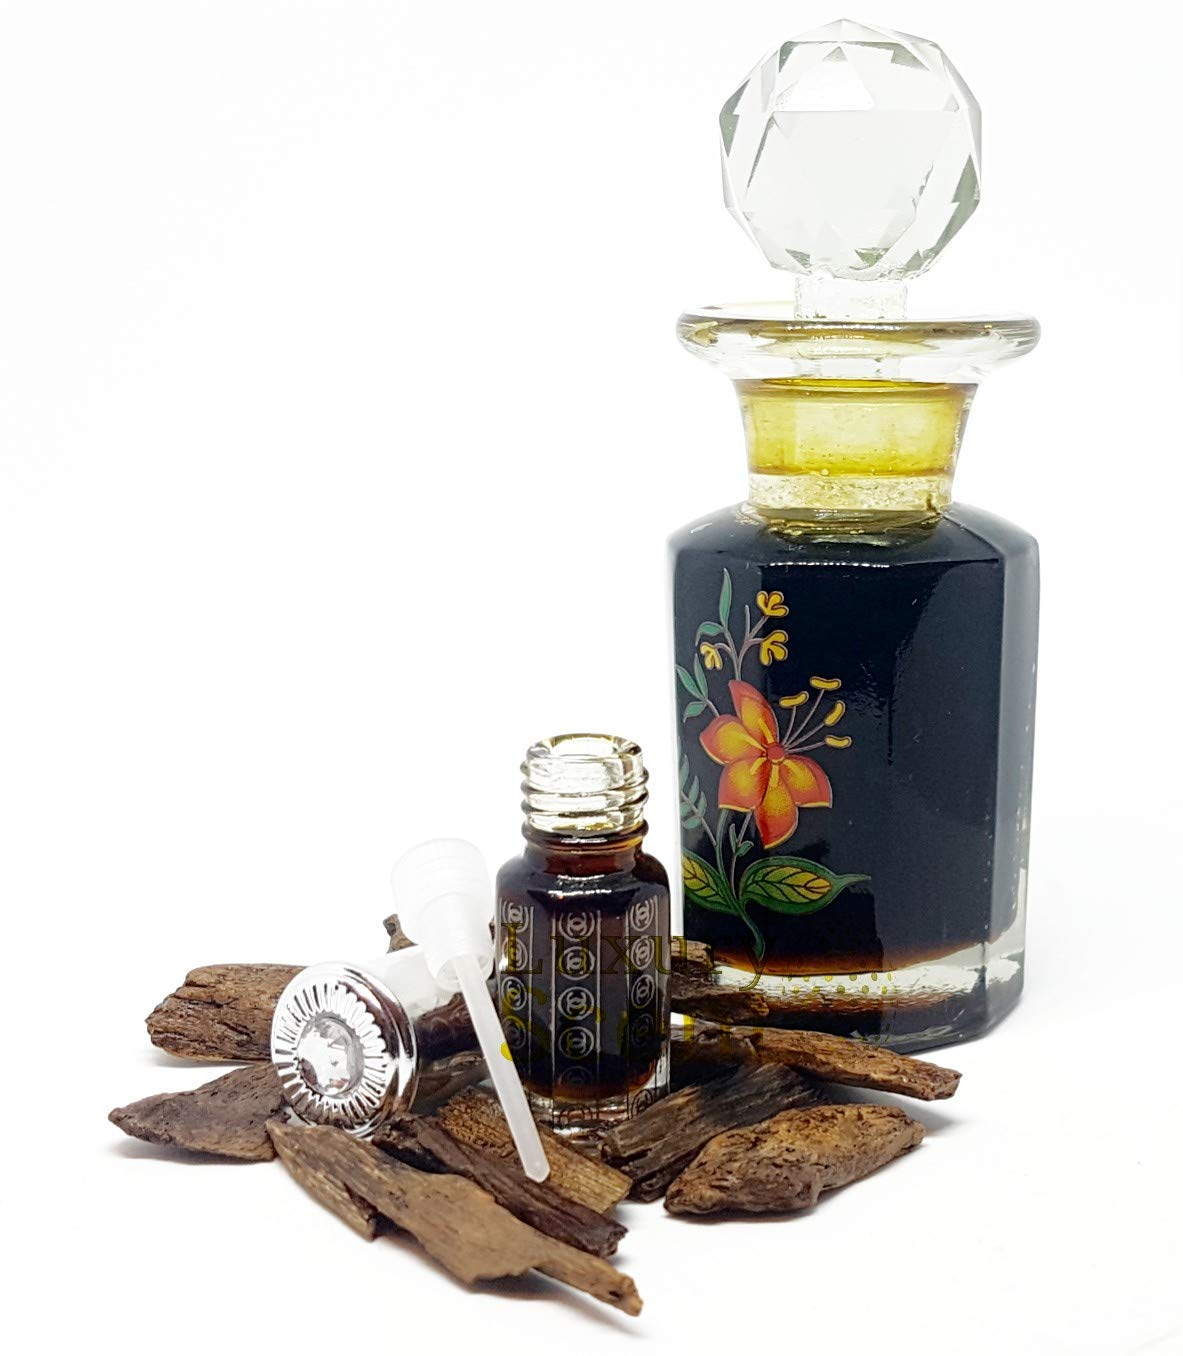 100% PURE INDIAN OUD PERFUME OIL BY LUXURY SCENT 3ML INDIAN AGARWOOD OIL PREMIUM QUALITY OUDH ATTAR